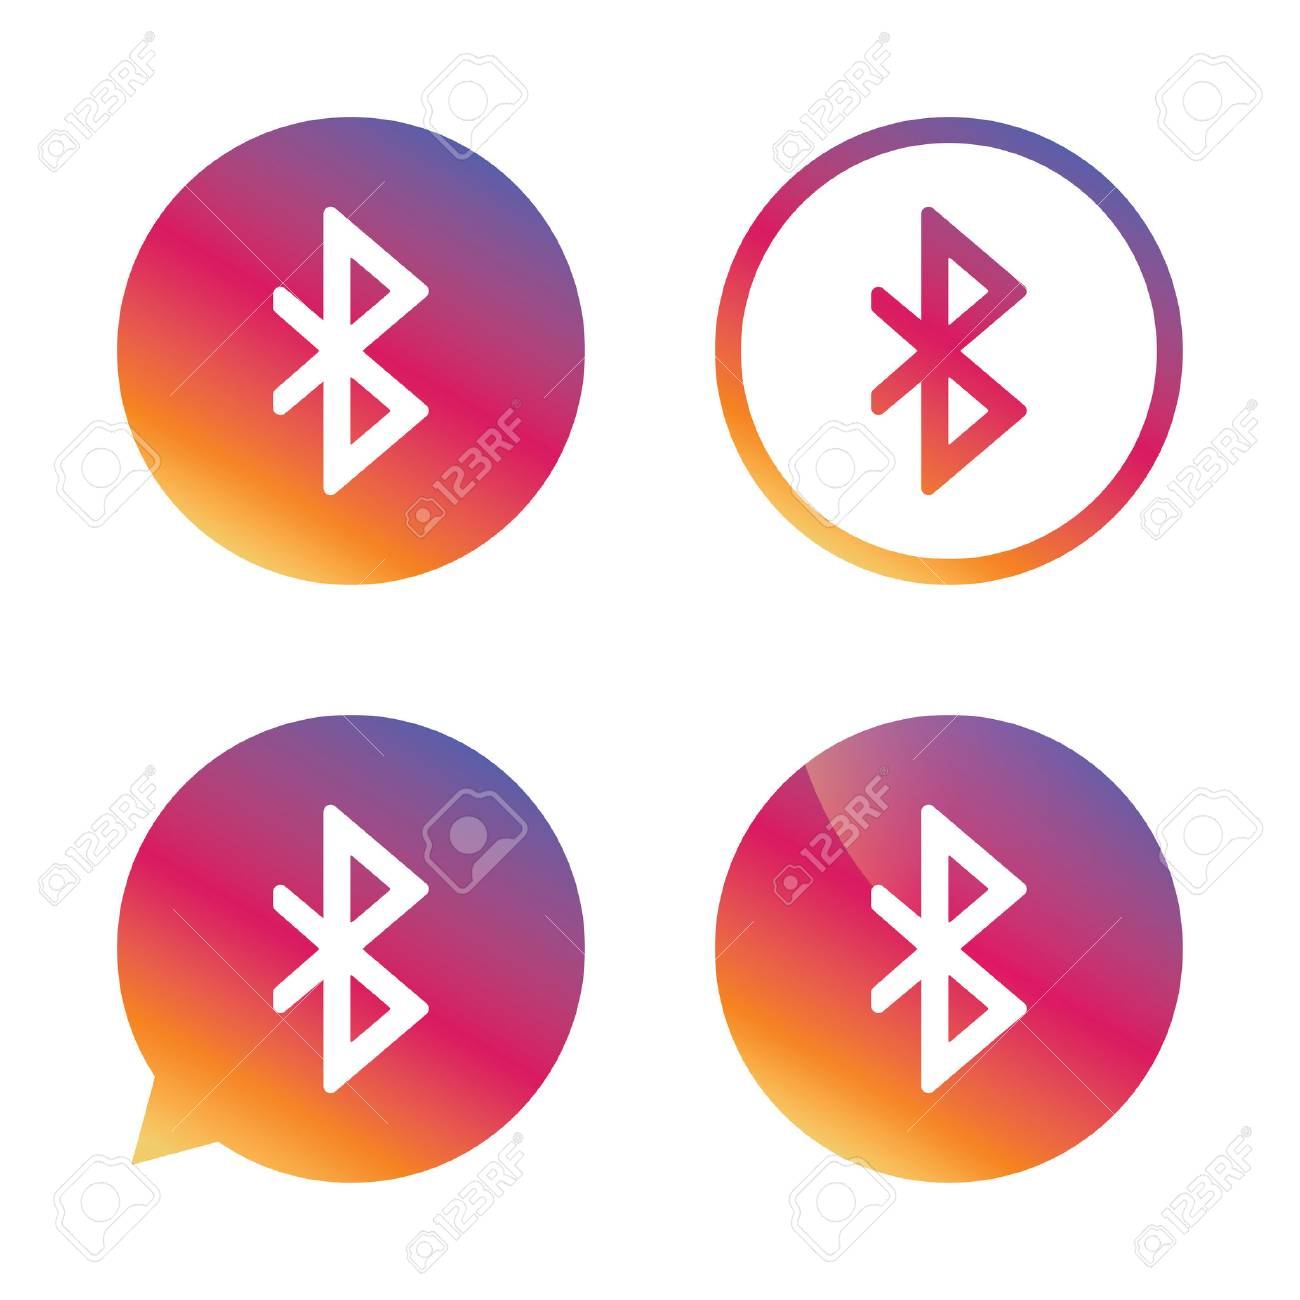 Bluetooth sign icon mobile network symbol data transfer mobile network symbol data transfer gradient buttons with flat icon biocorpaavc